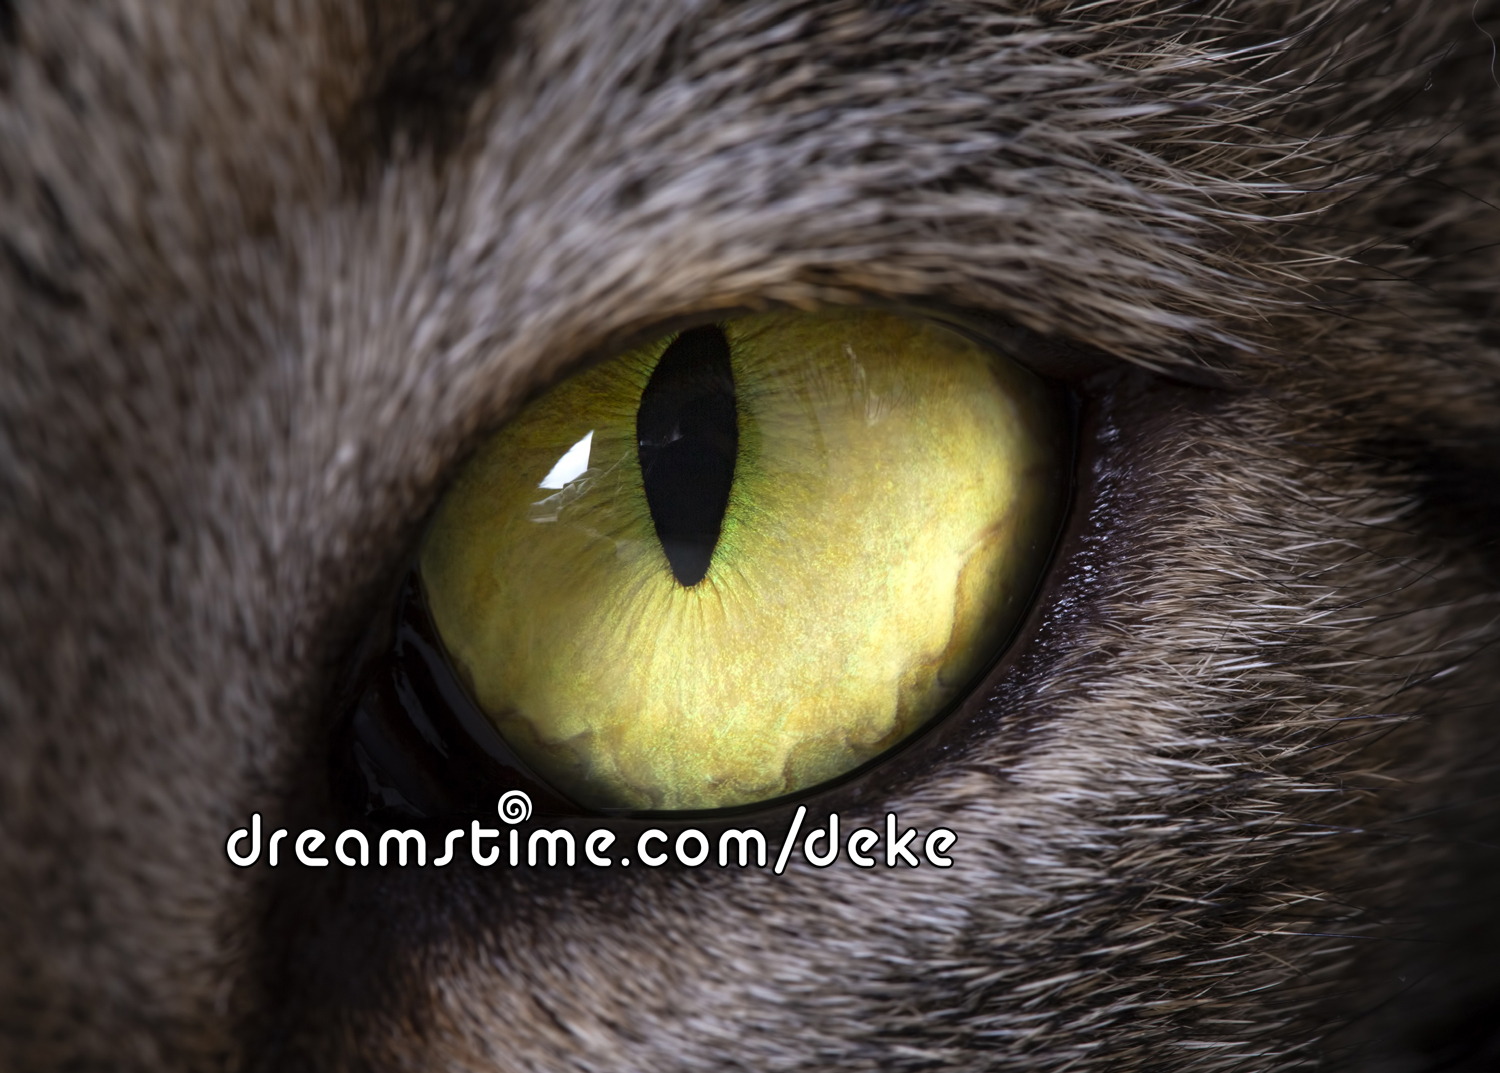 A close up cat eye from Dreamstime.com